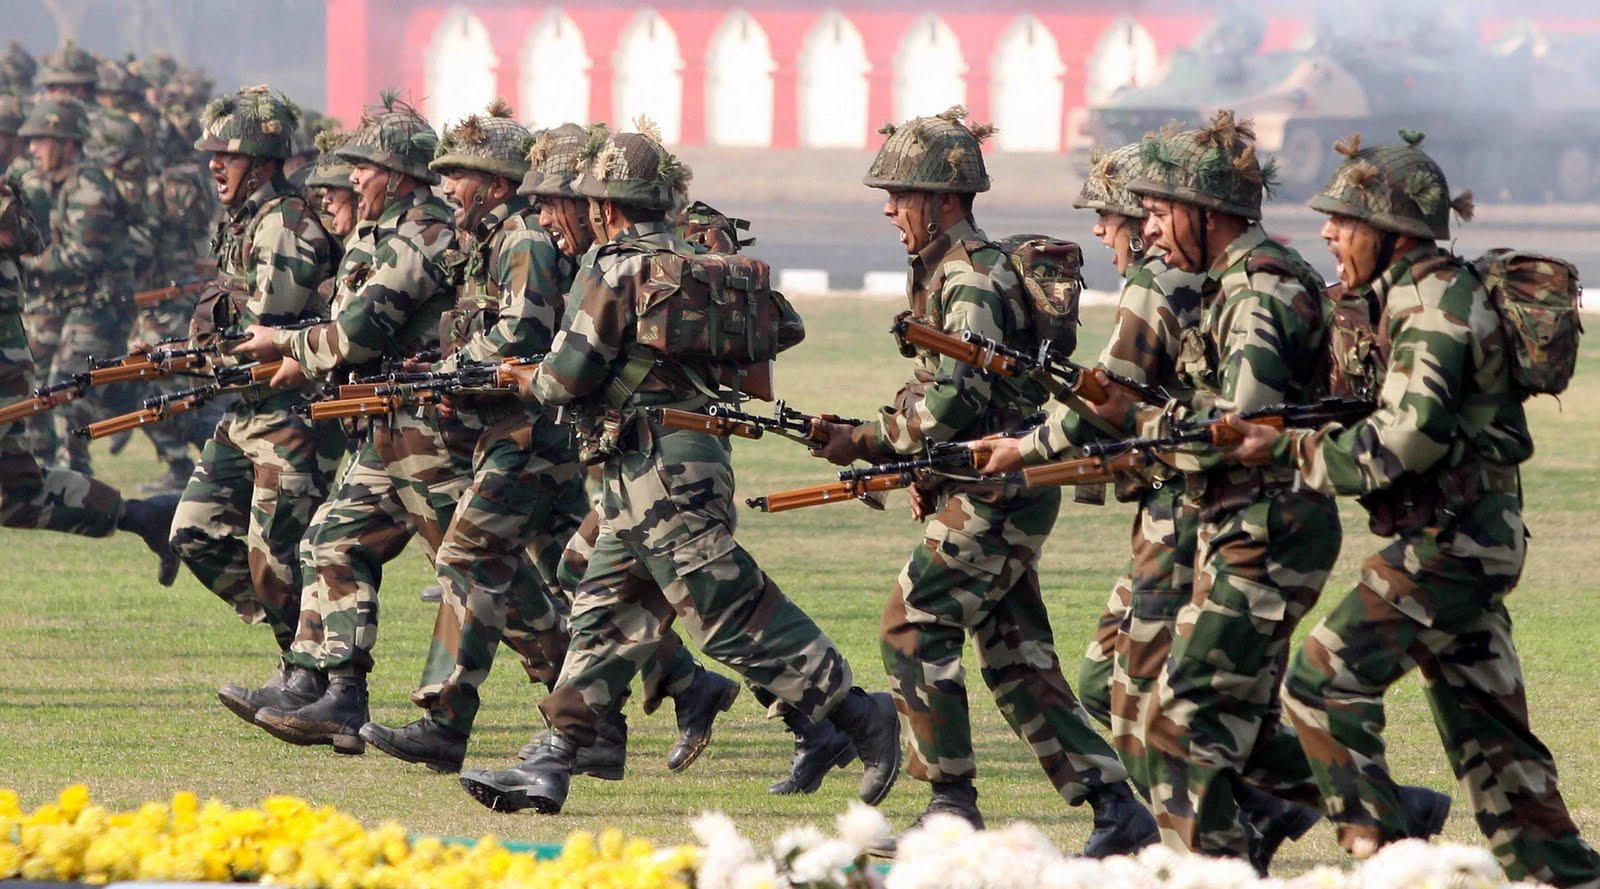 300 Youth From Jammu & Kashmir Join The Indian Army Amidst Unrest In The Valley